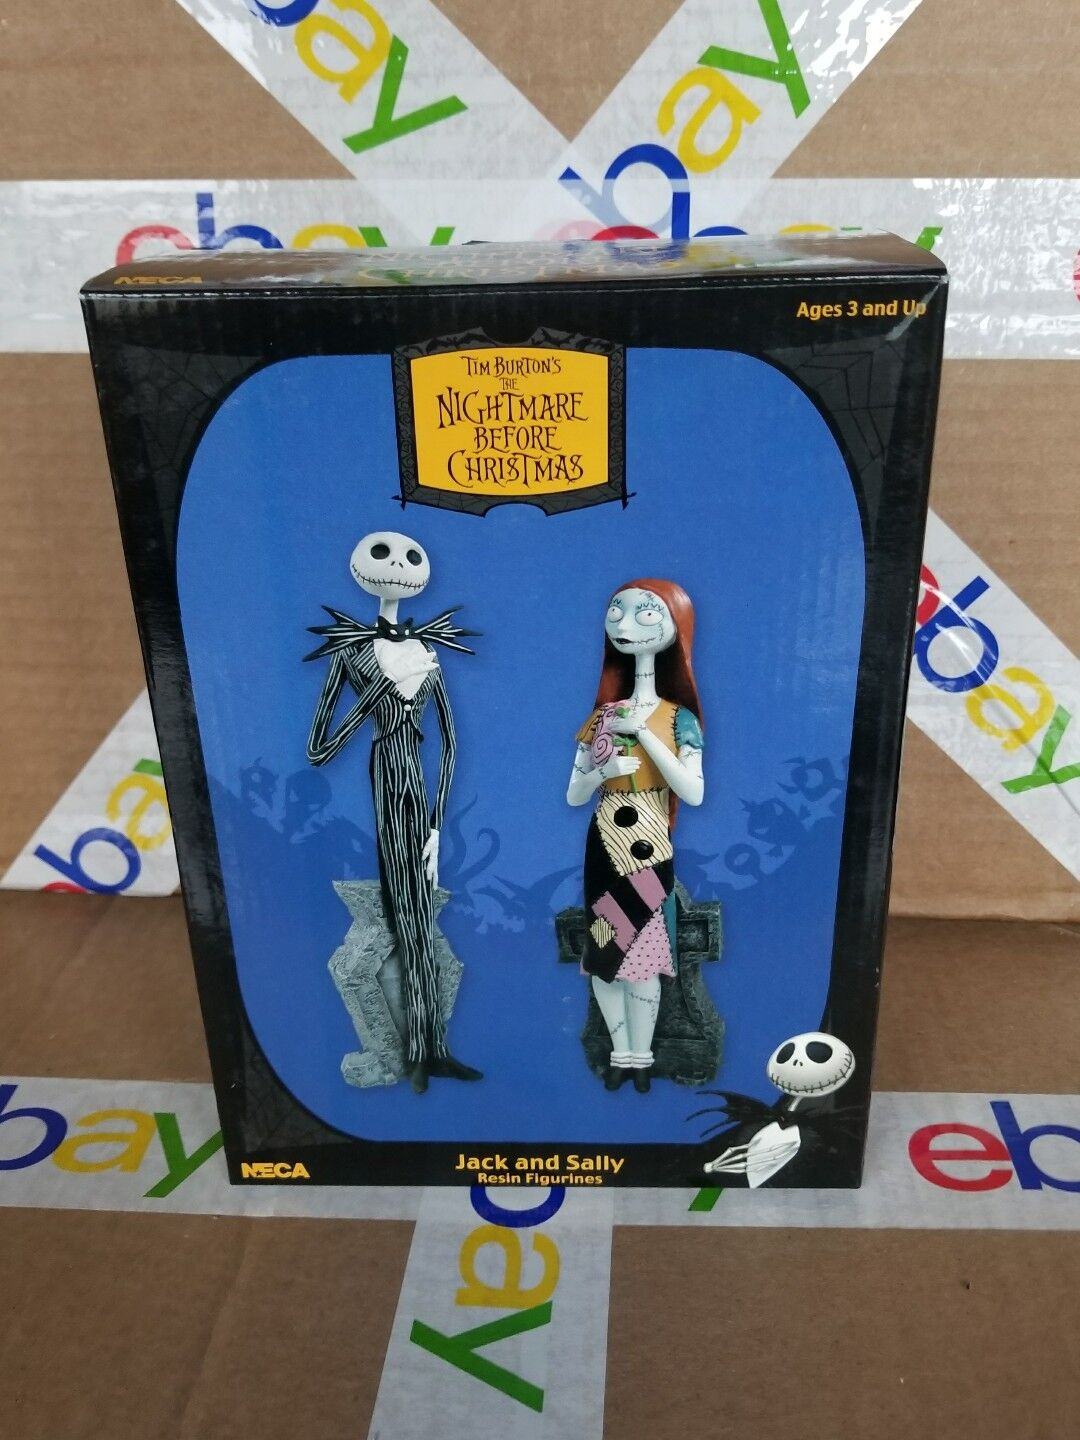 NECA Nightmare Before Christmas Jack & Sally Resin Figurines Pair 2004 Mib NOS